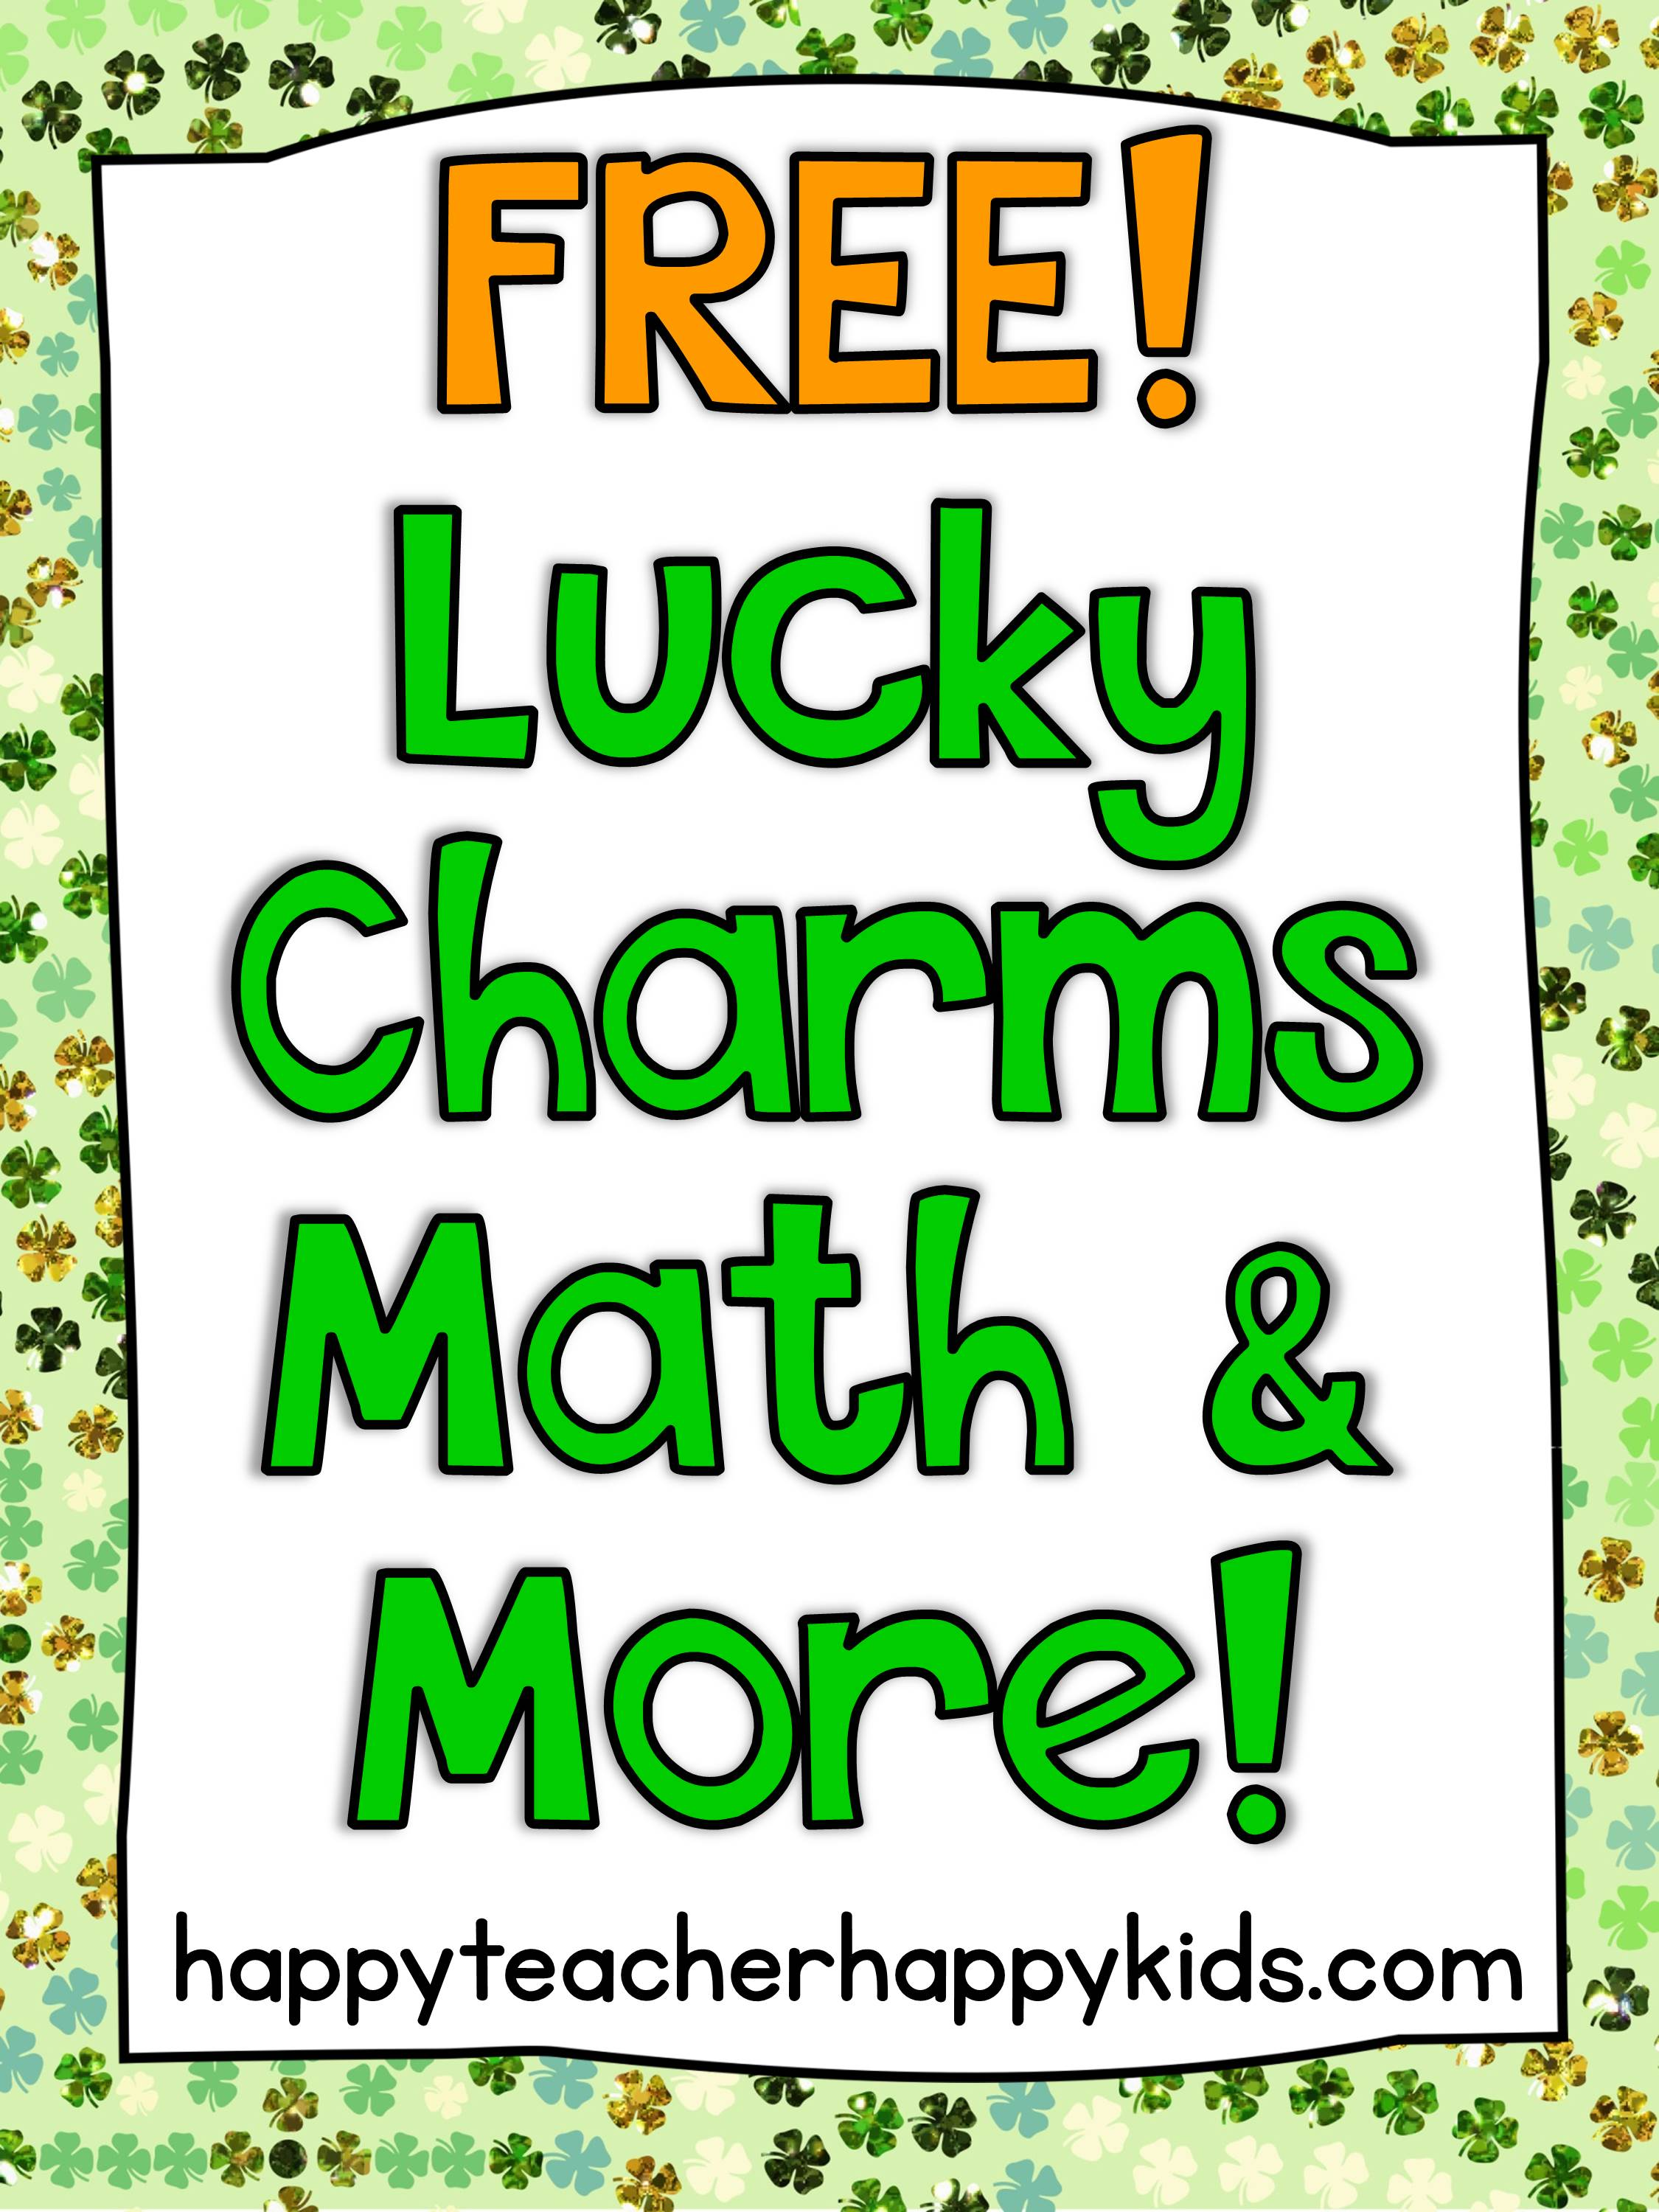 Free Lucky Charms Math Amp More